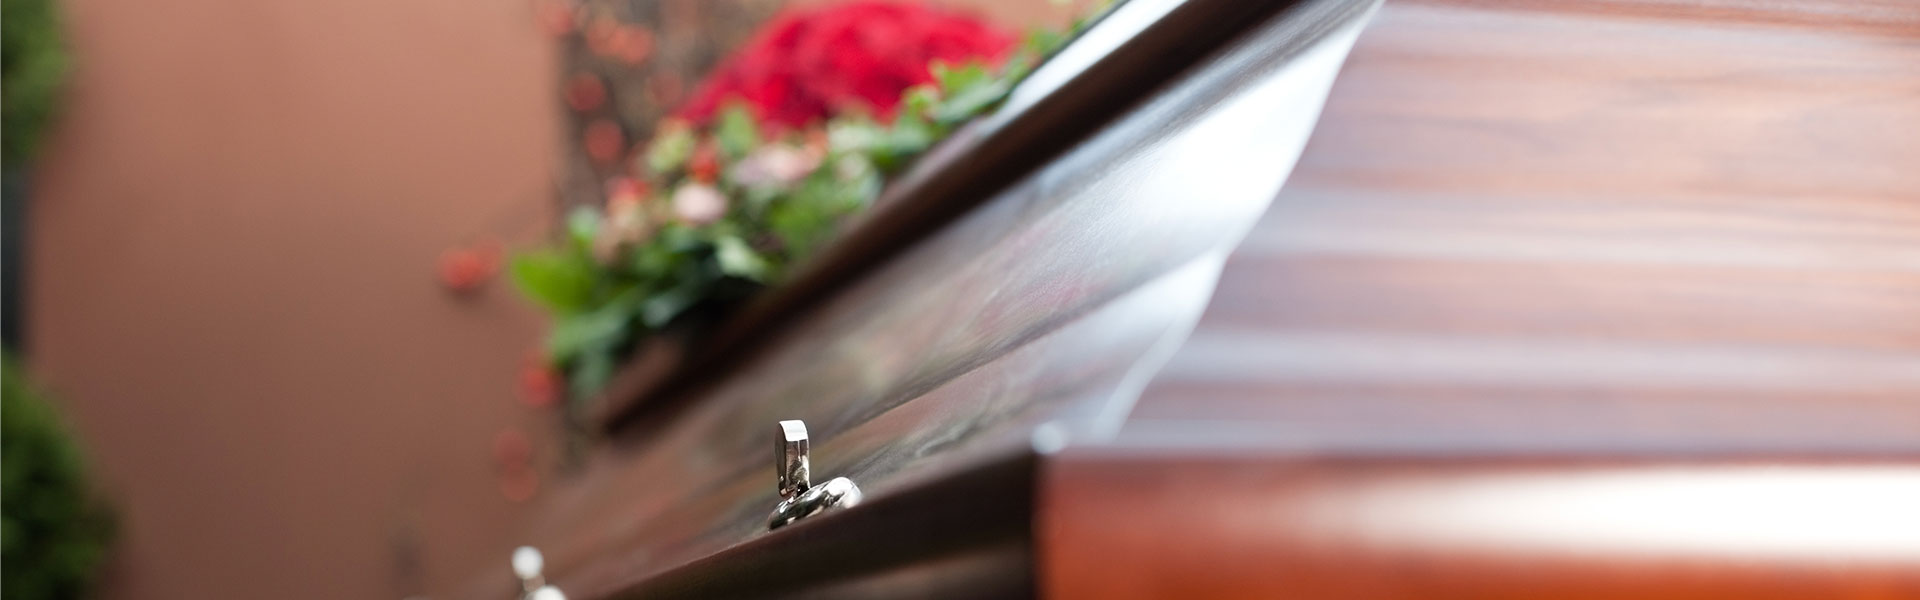 When to call the Funeral Director